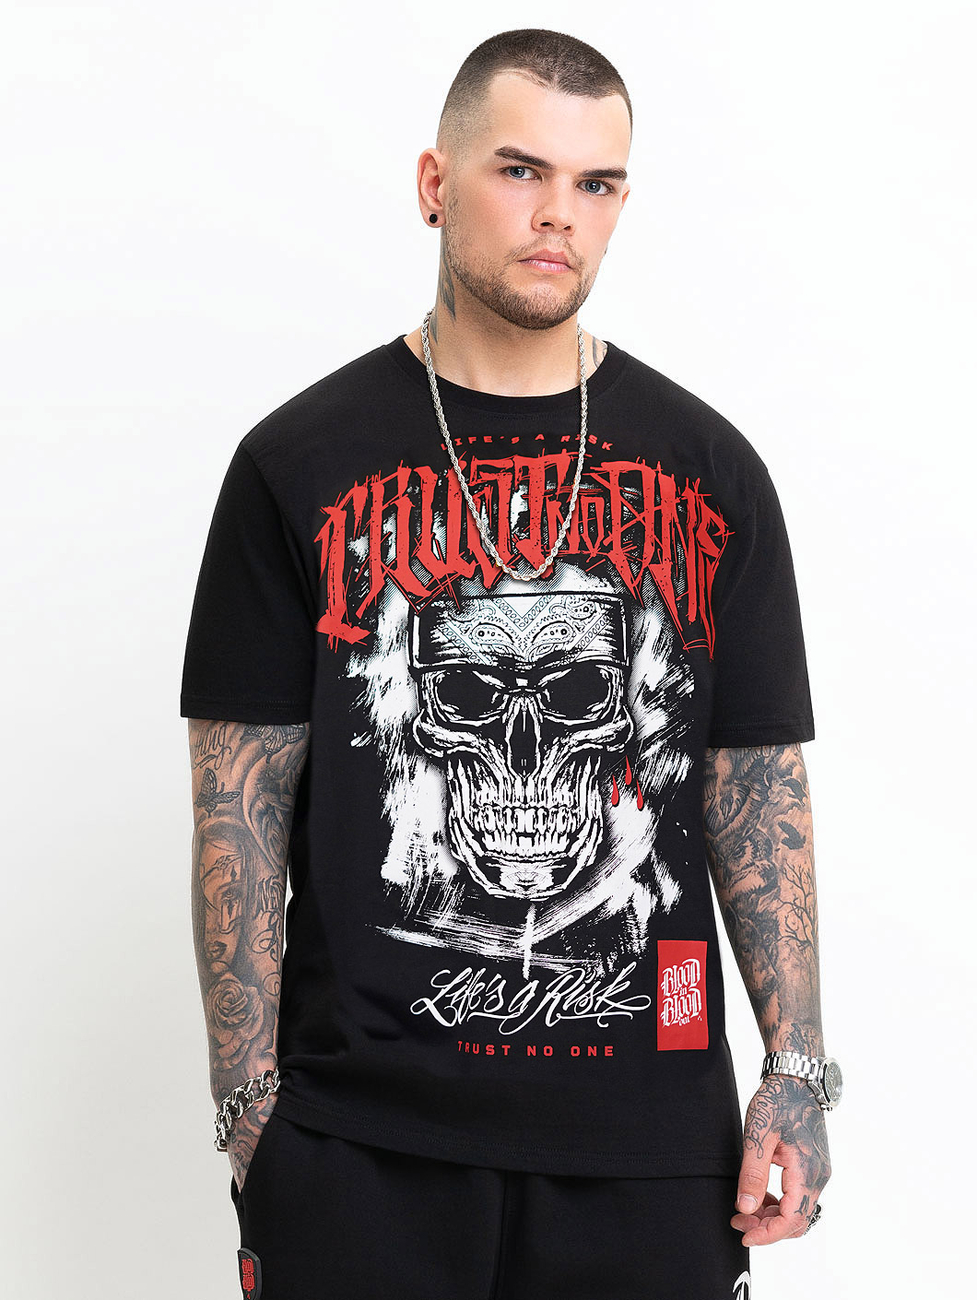 Blood In Blood Out Bandaro T-Shirt 4XL